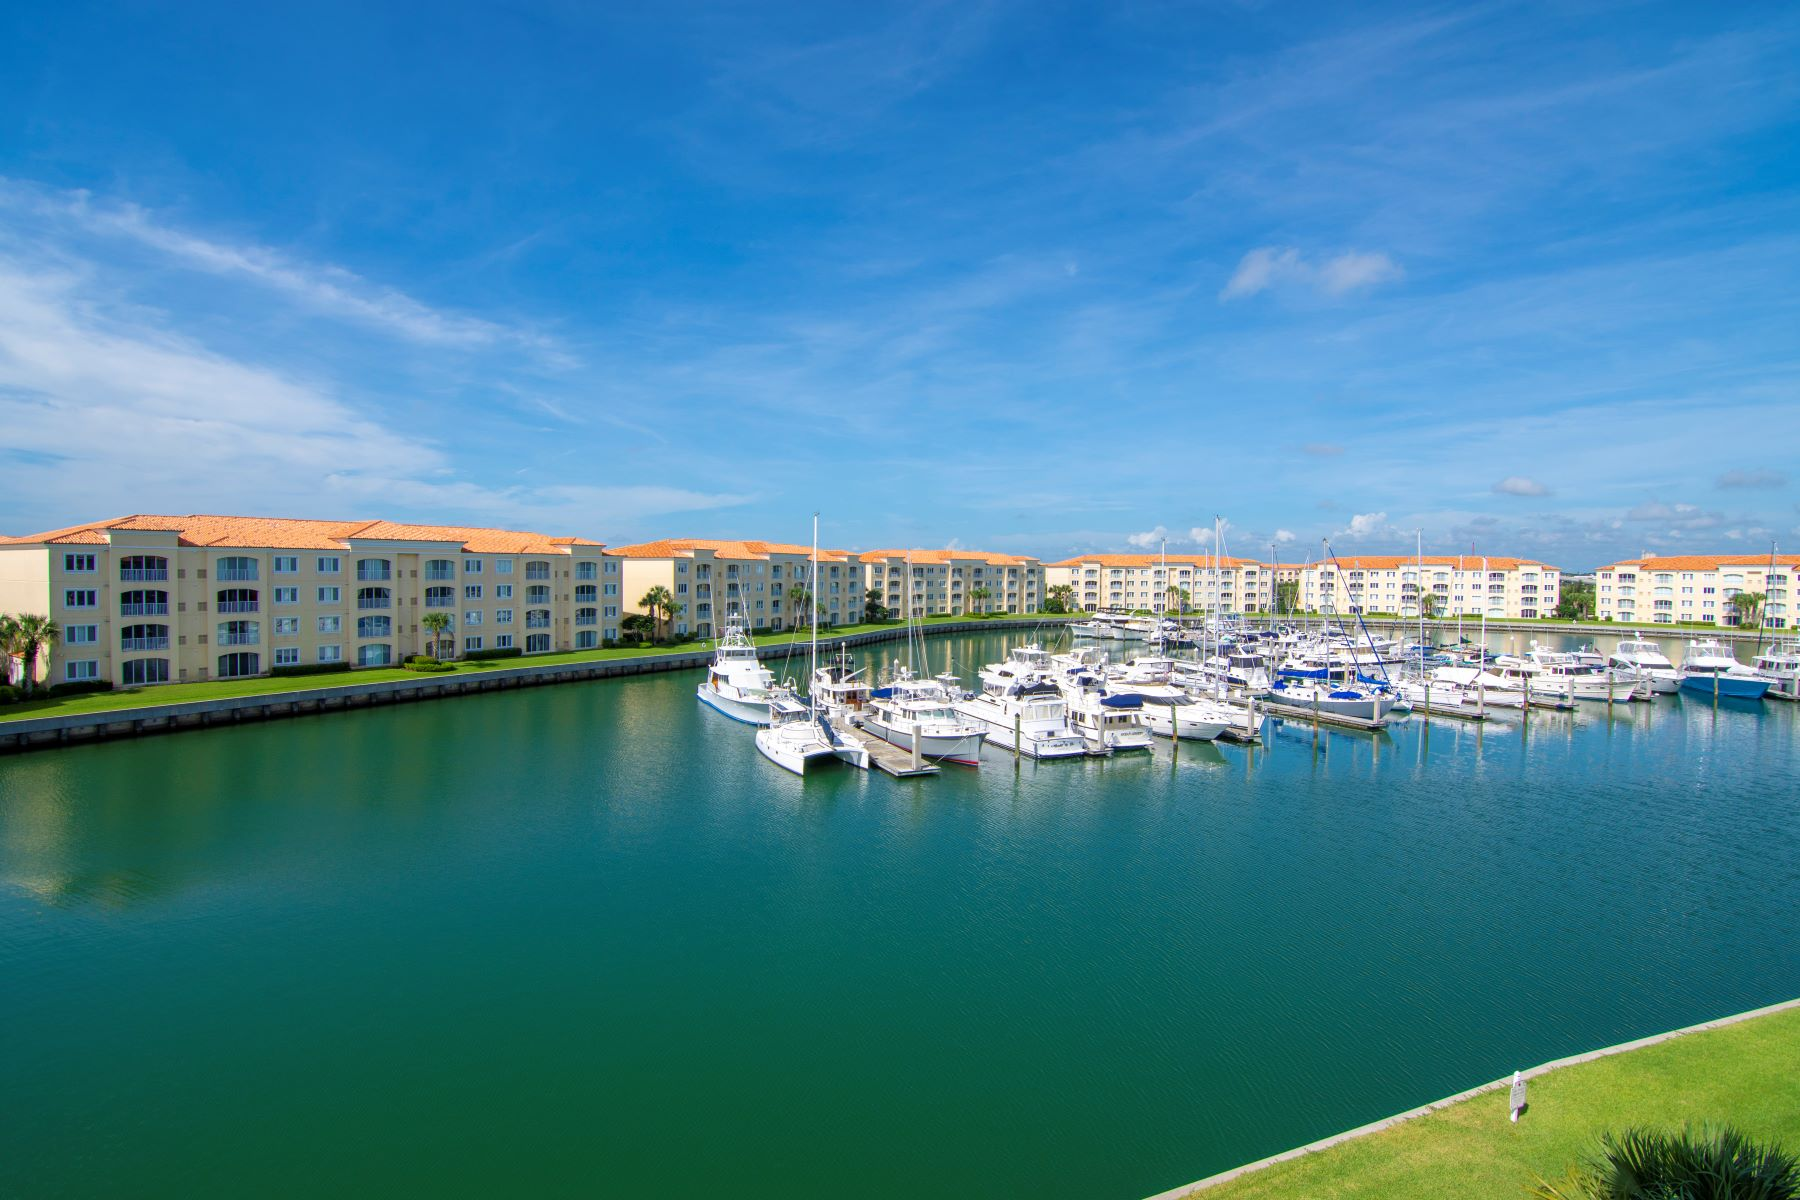 Penthouse Corner Unit Overlooking Harbour Isle's Prestigious Marina of Yachts 8 Harbour Isle Drive #PH06 Fort Pierce, Florida 34949 Estados Unidos